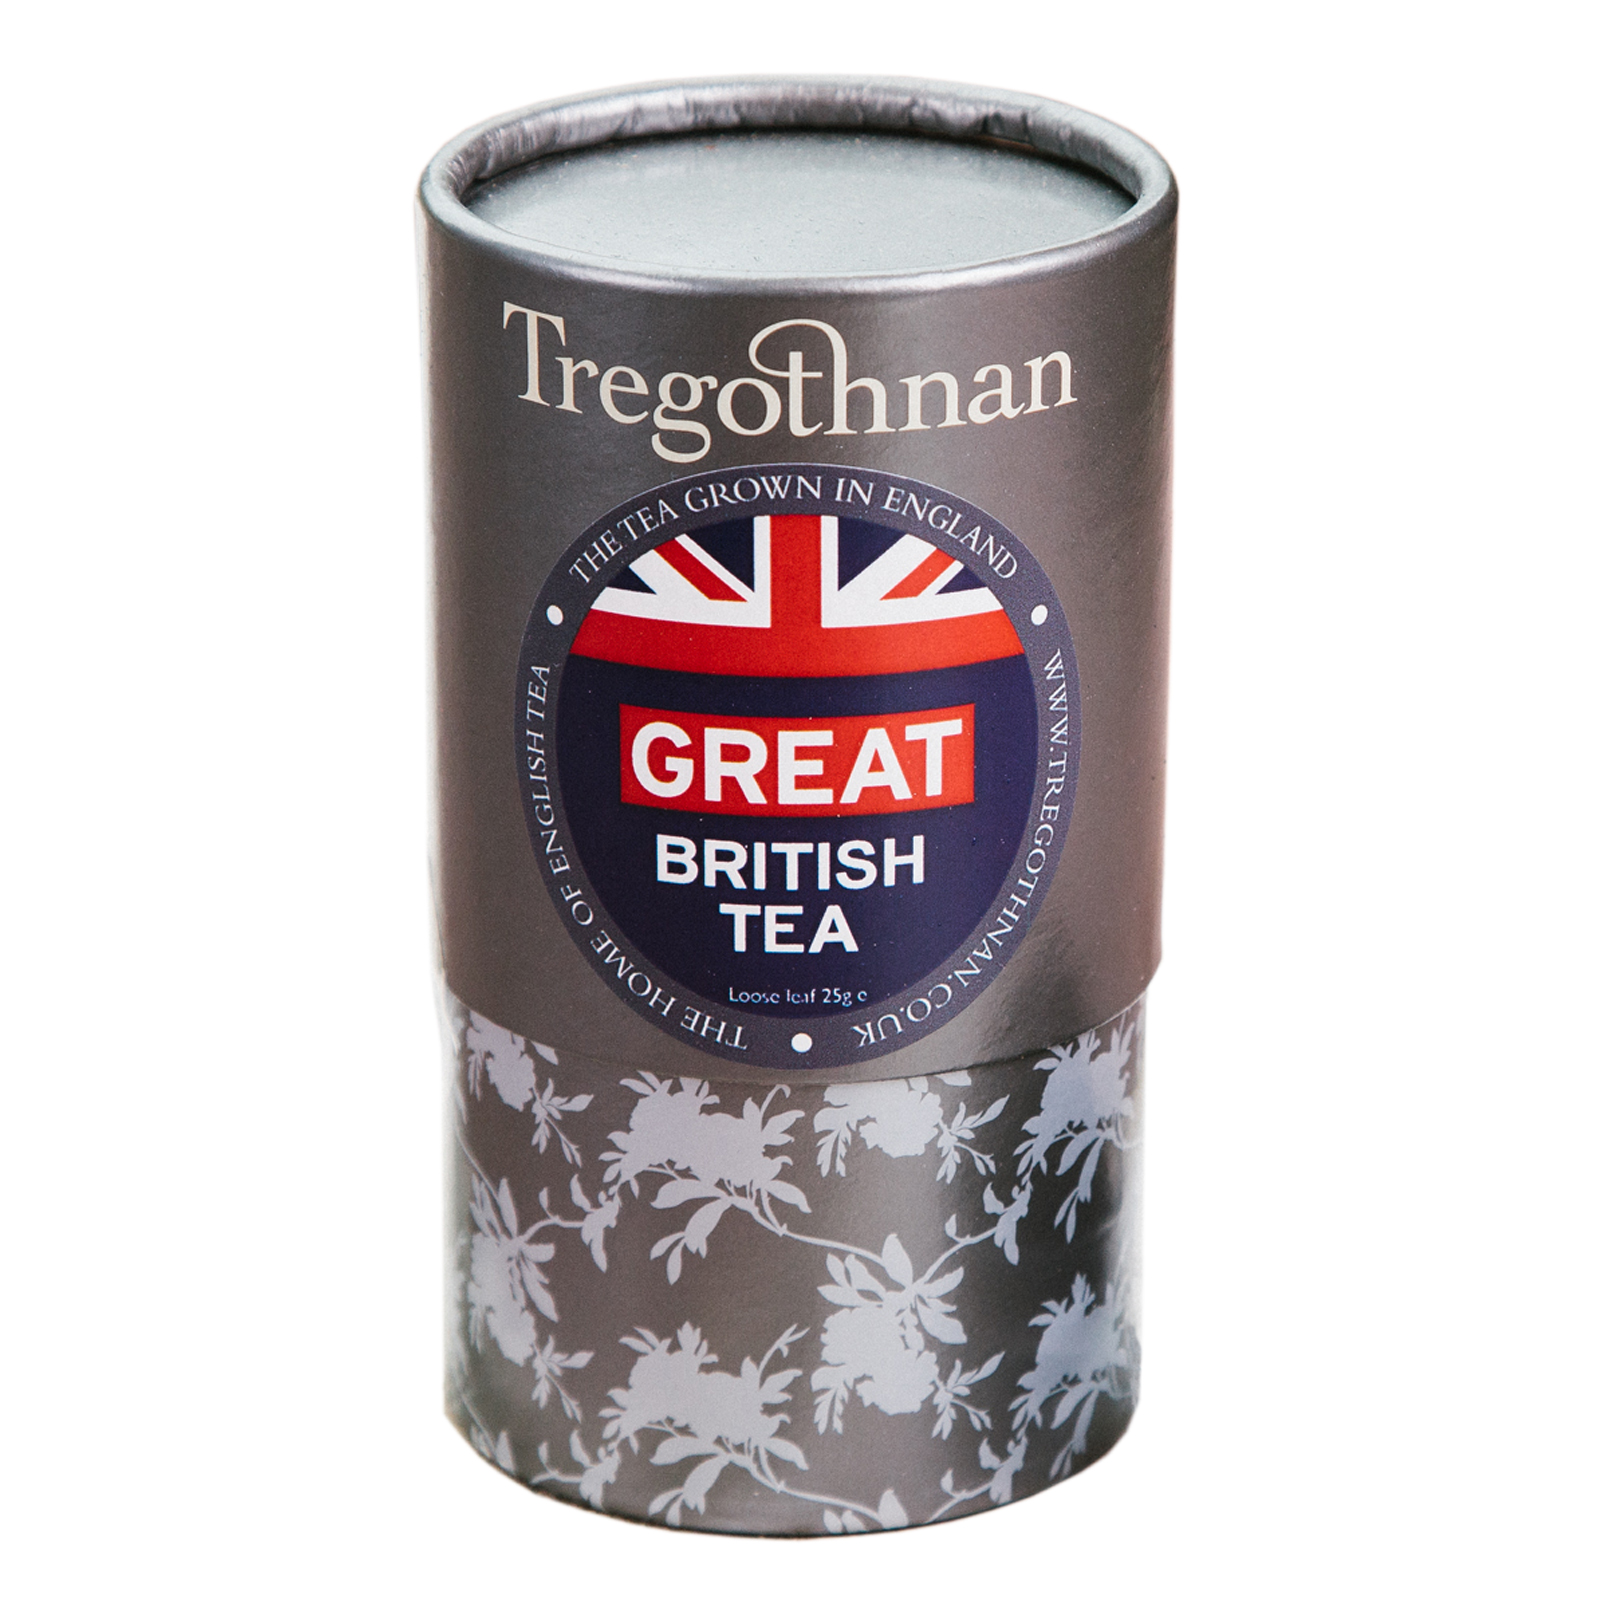 Tregothnan Great British Tea Loose Leaf Tea Caddy 25G